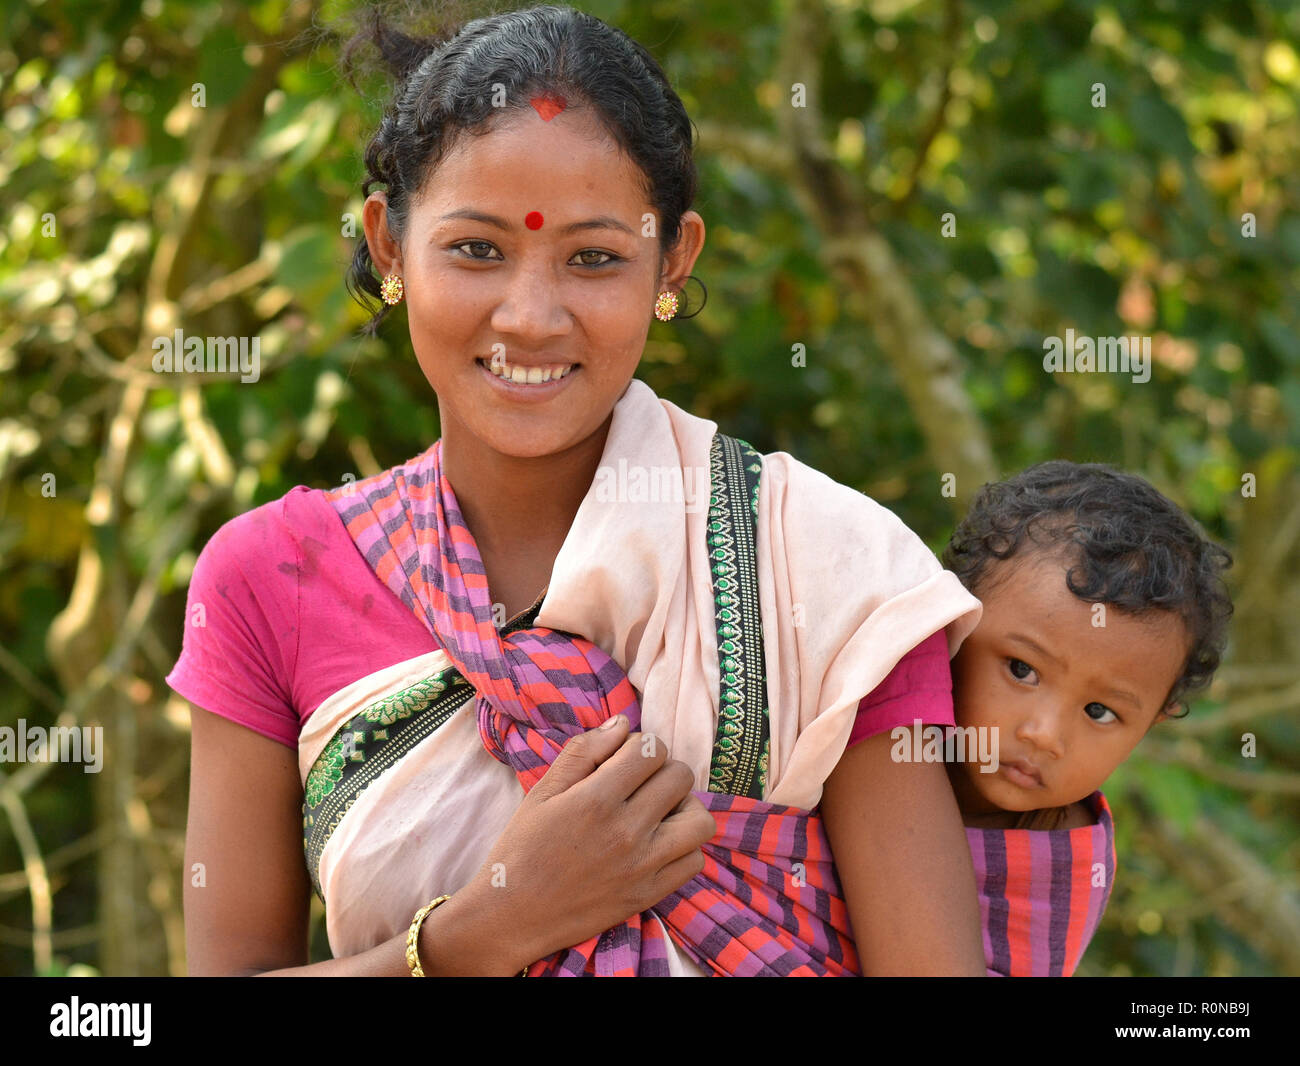 Young Northeast Indian Mishing tribal woman from Majuli Island carries her curious baby boy in a baby sling on her back. Stock Photo